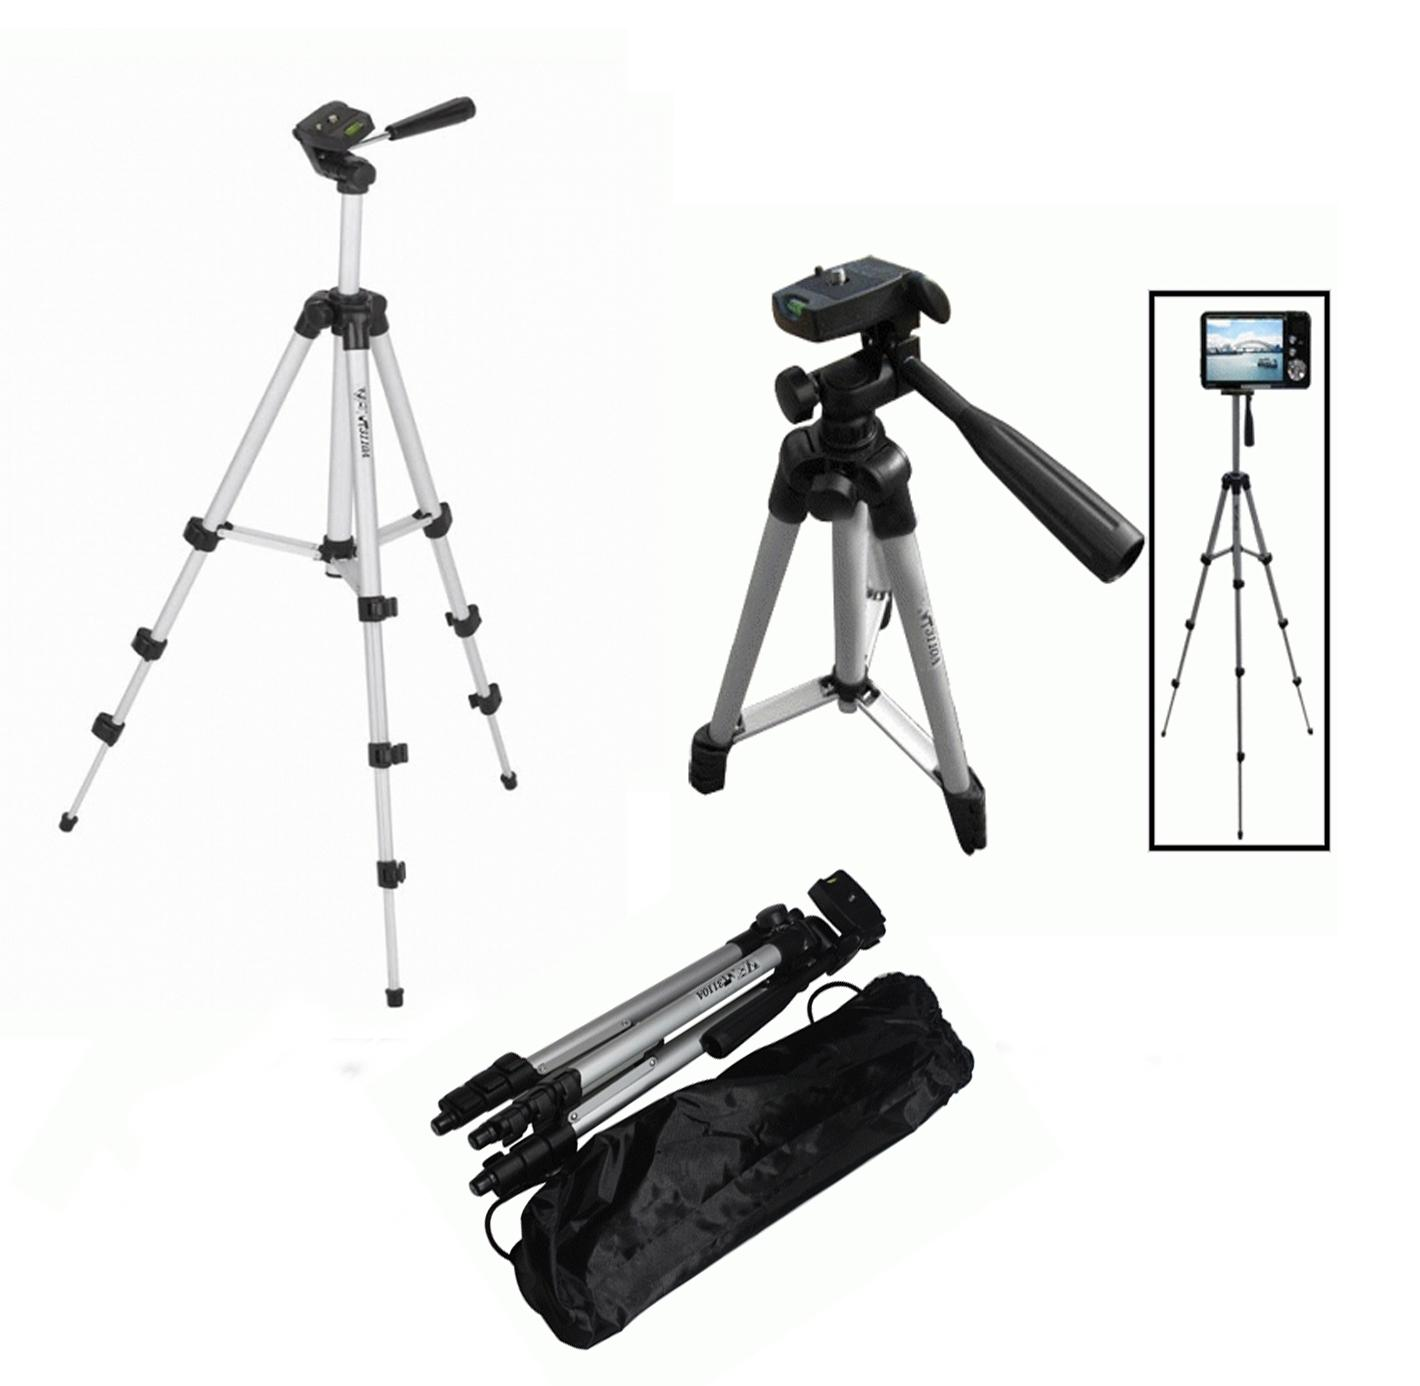 Fitur Universal Tripot Waifeng Hongfeng Wt 3110a Stand 4 Section Weifeng Portable Tripod Aluminium Legs With Brace Smartphone Kamera Handycam Detail Gambar Bisa Untuk Hp Silver Free Holder U Terkini